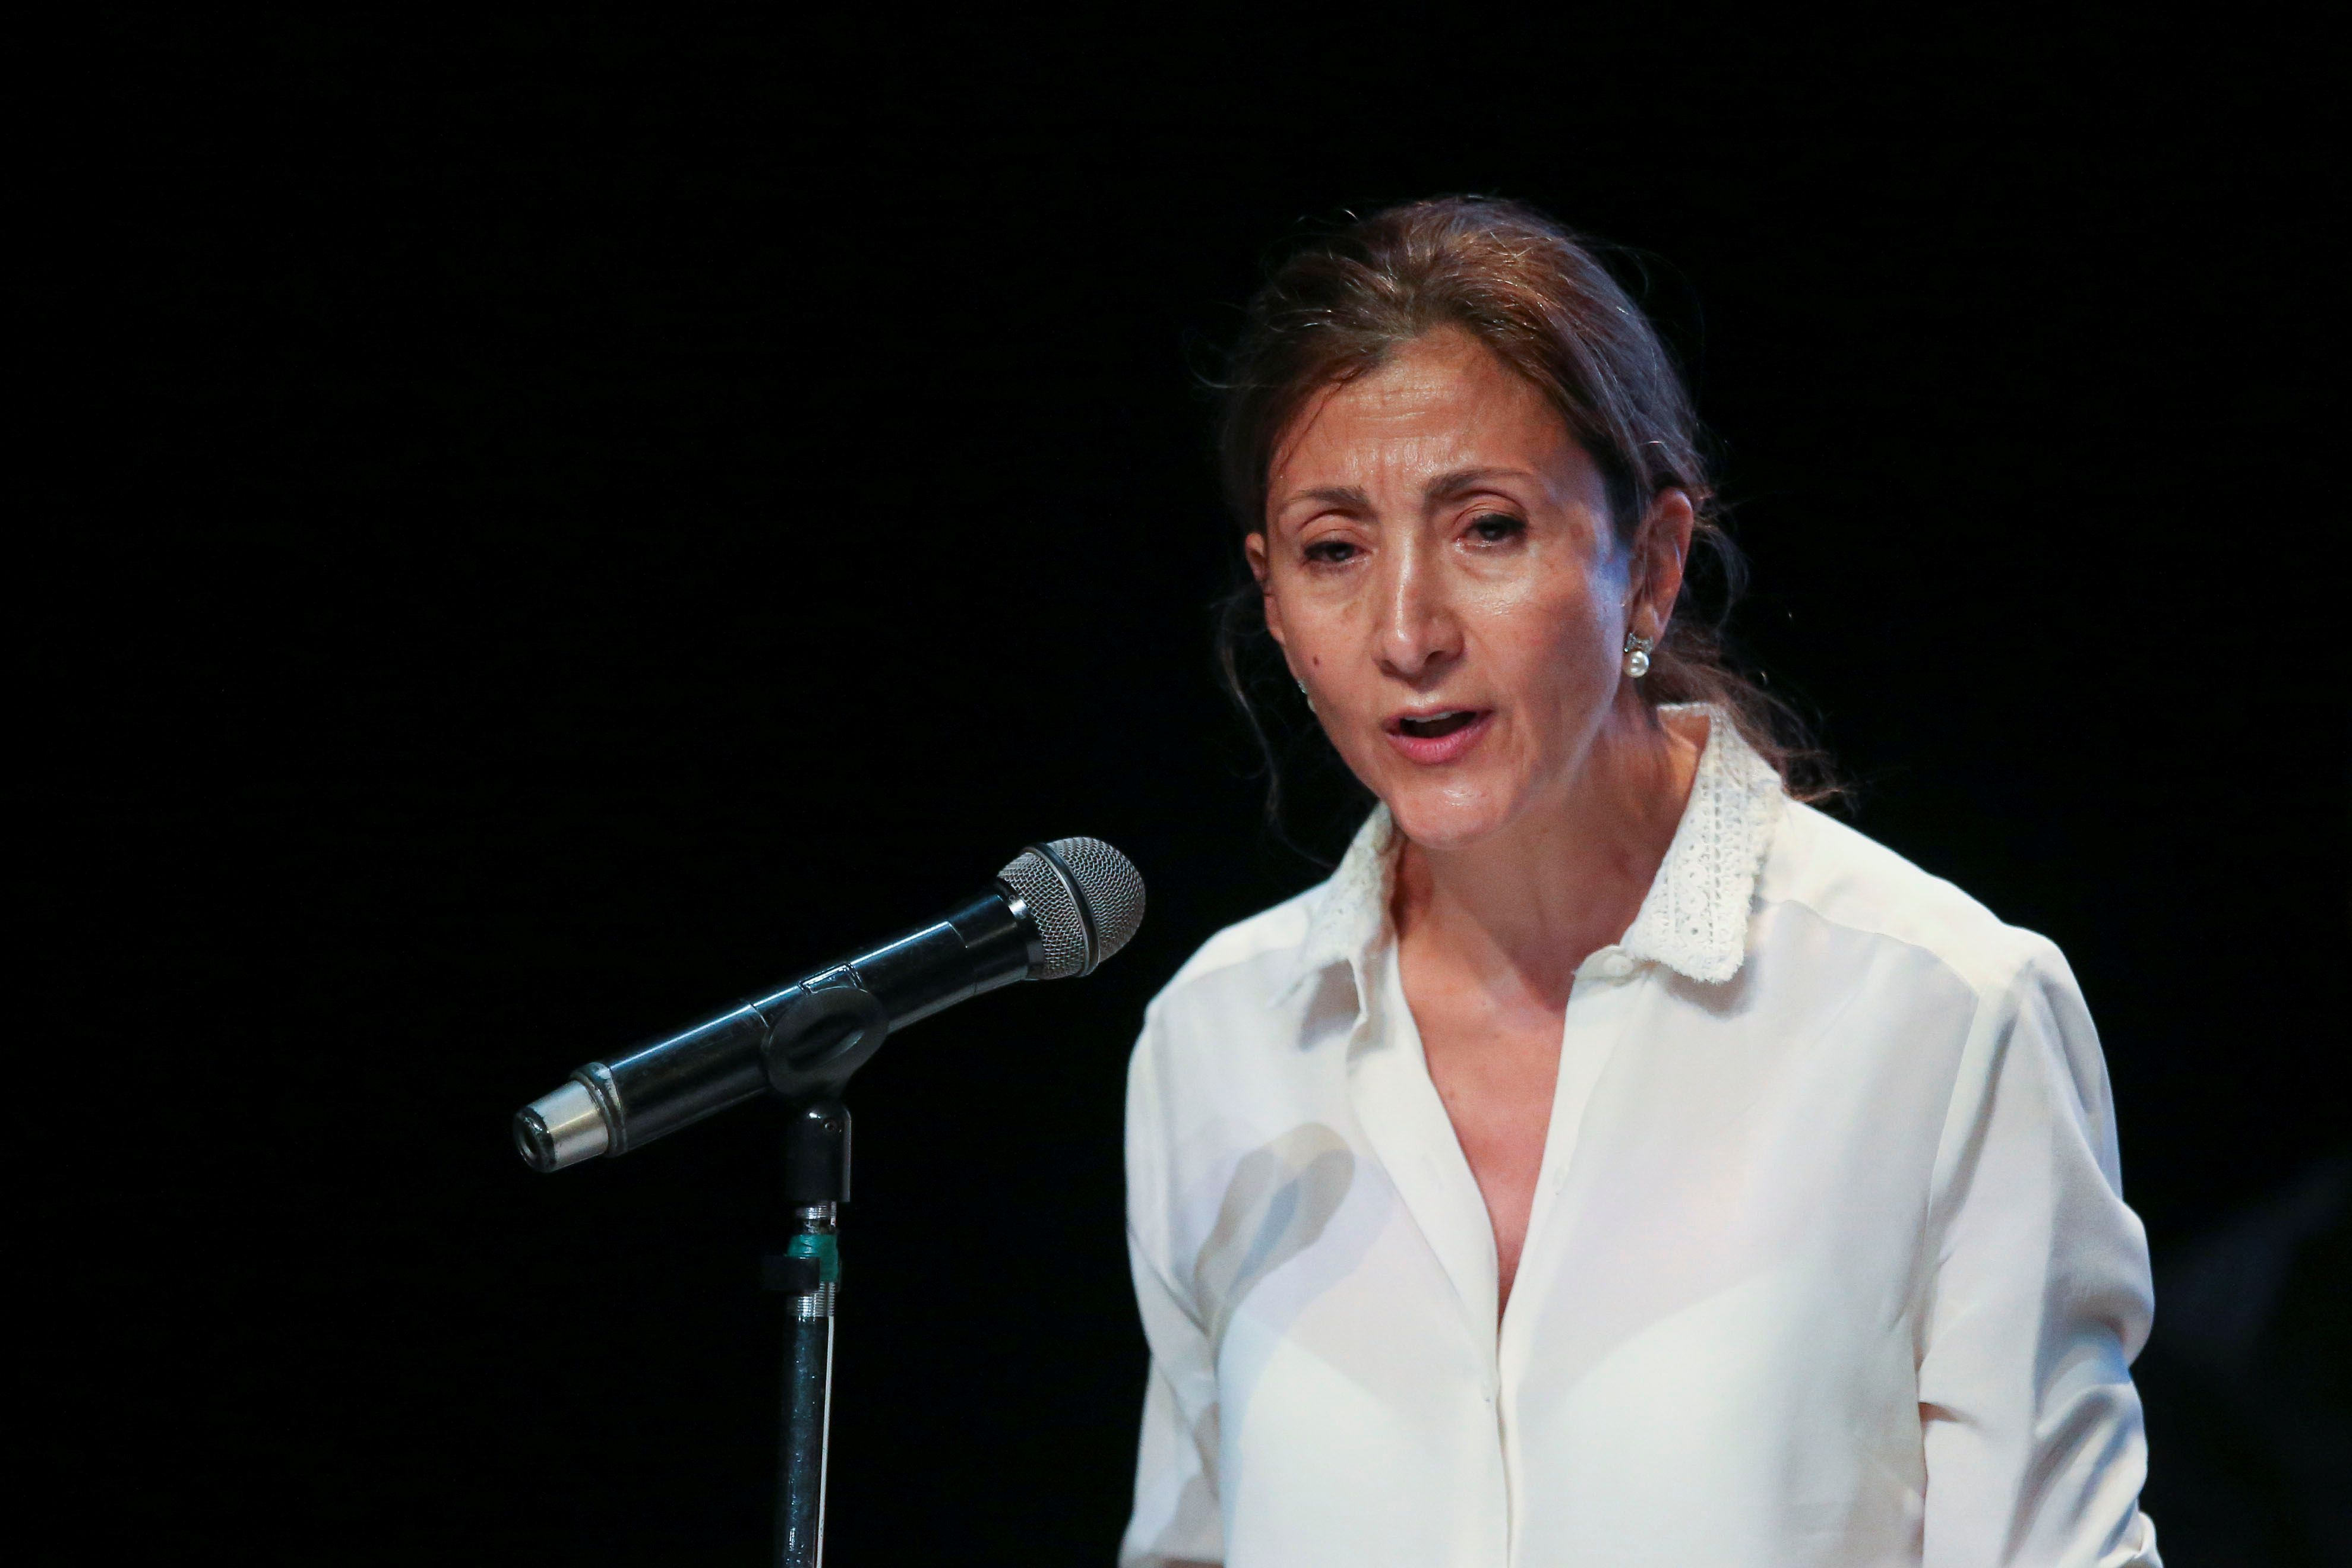 Ingrid Betancourt, French-Colombian politician and former FARC hostage, speaks during an act of recognition with the participation of her kidnappers and their now political party Comunes, in Bogota, Colombia June 23, 2021. REUTERS/Luisa Gonzalez